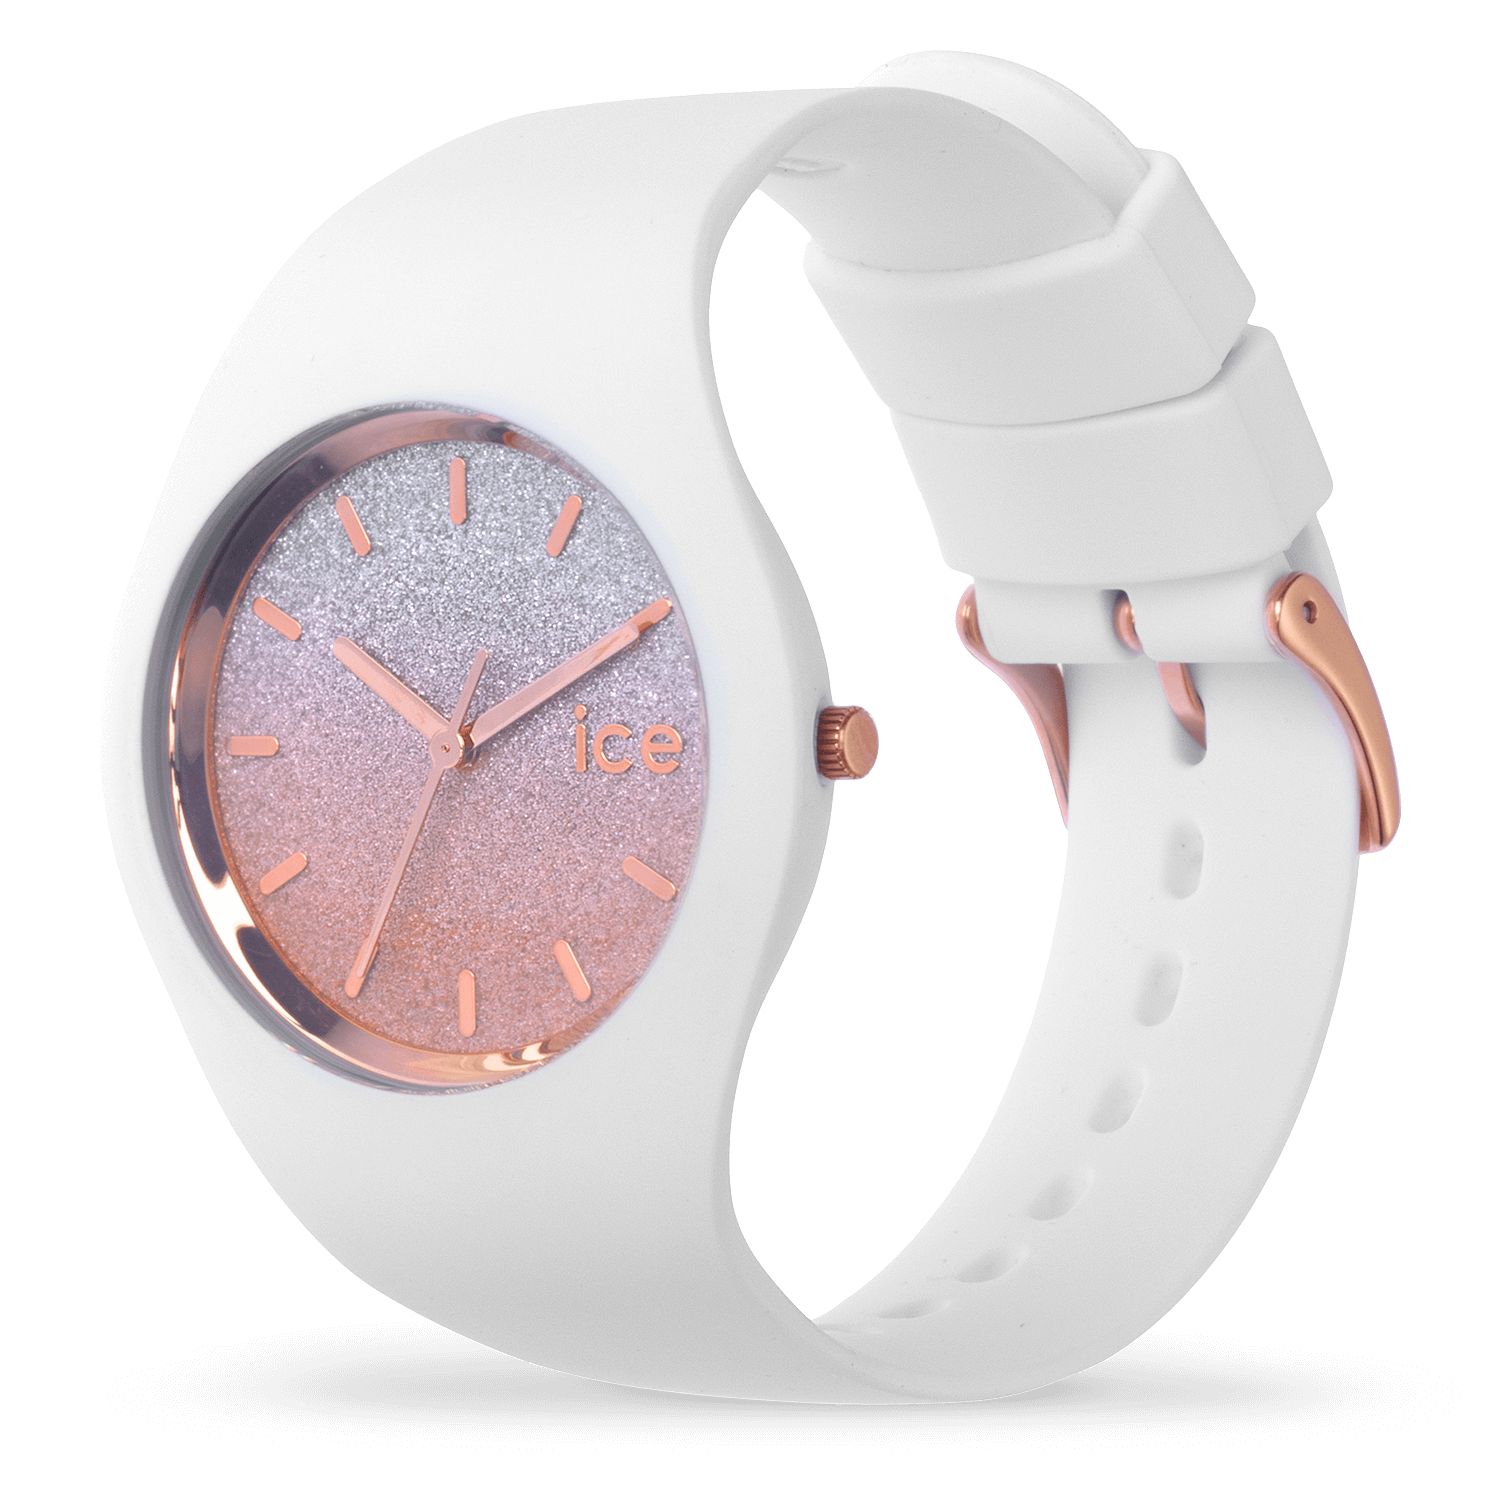 meilleur pas cher b21fa cf8b4 Montre Ice-Watch | ICE lo blanche rose - moyenne